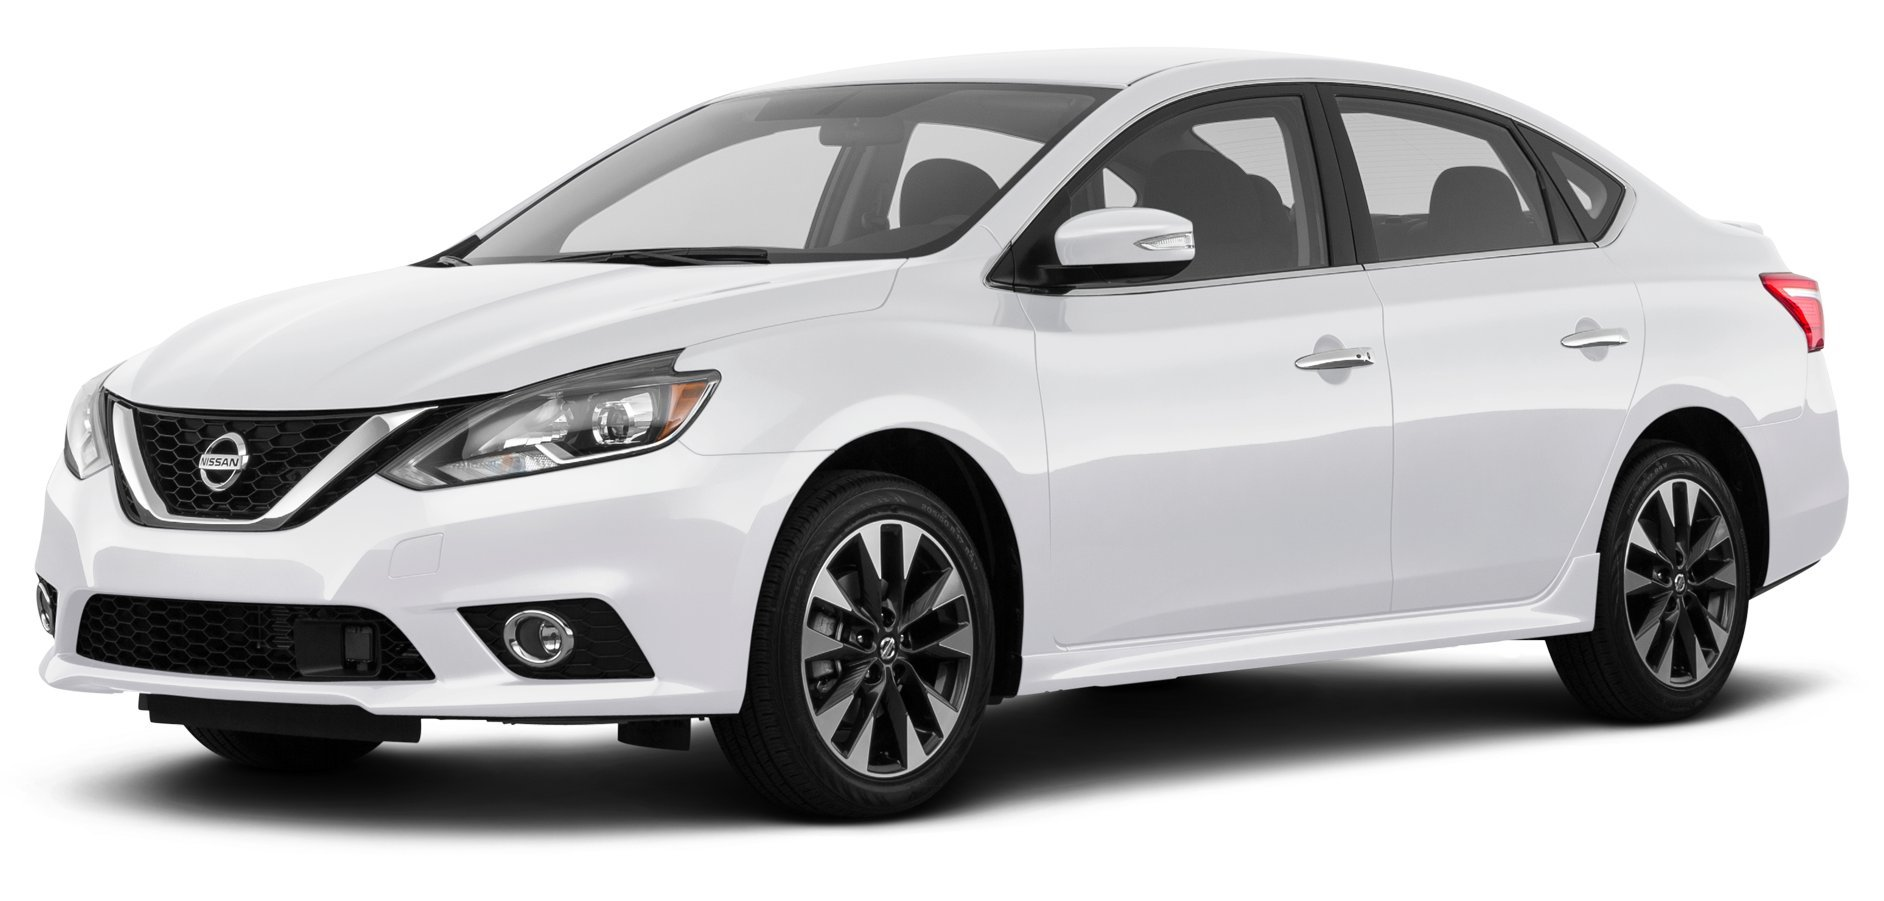 Amazon.com: 2018 Nissan Sentra Reviews, Images, and Specs ...